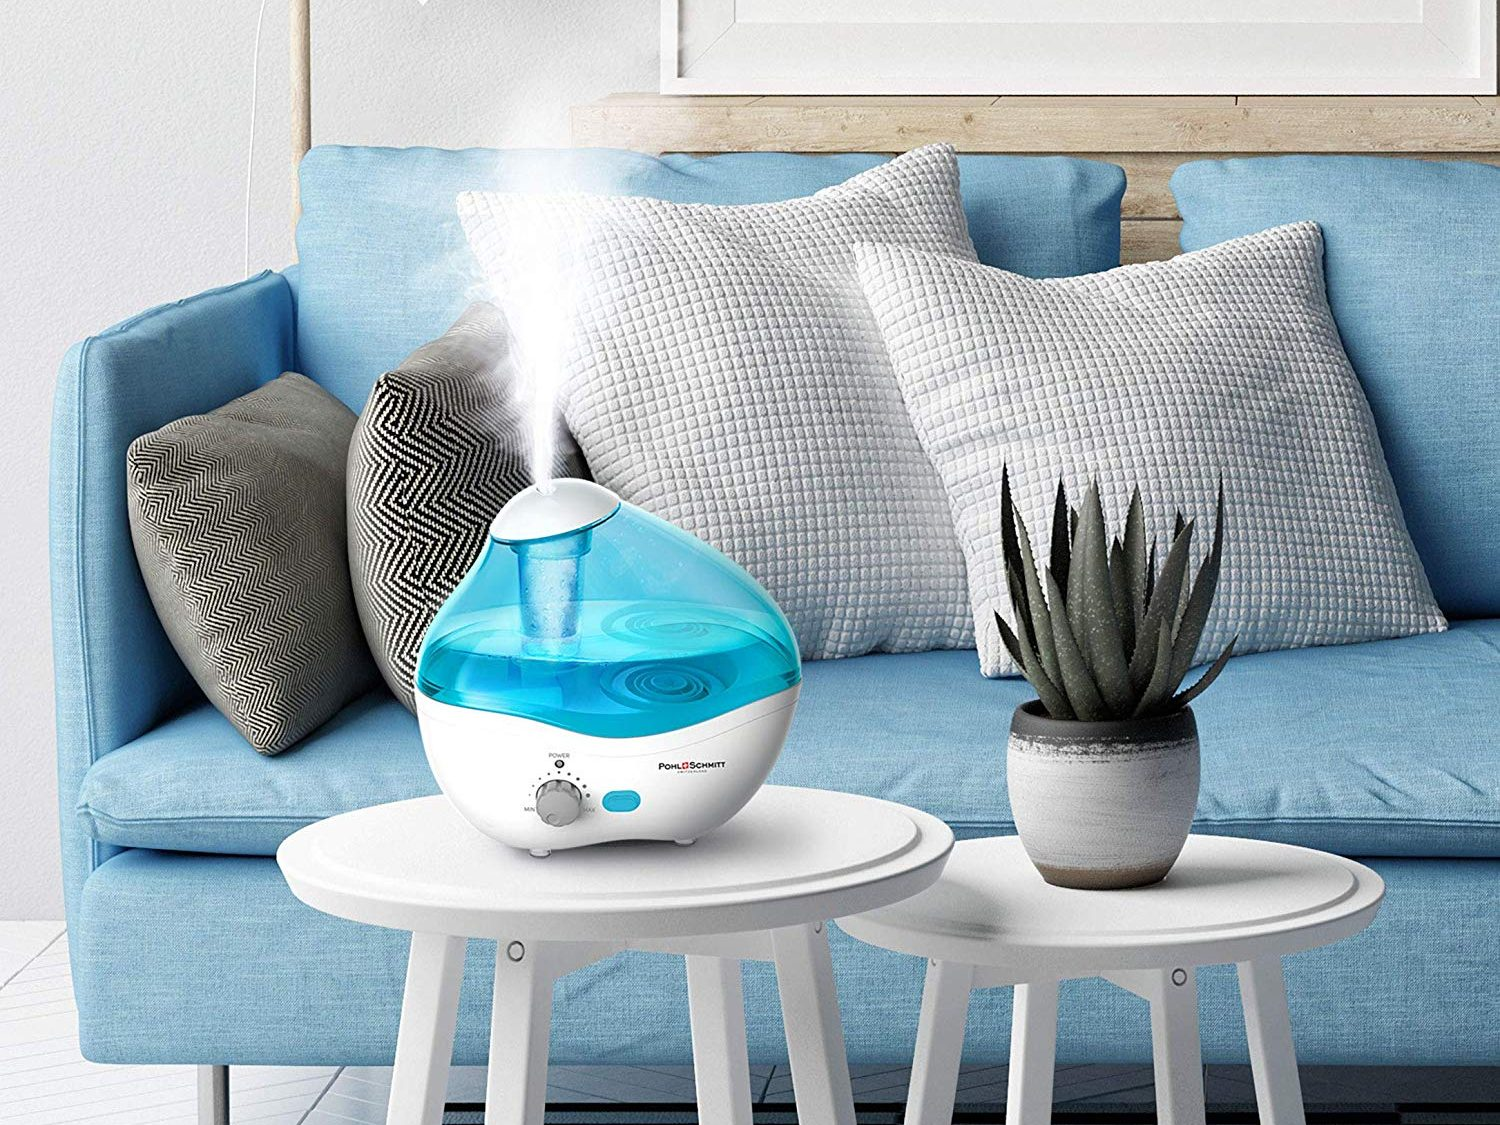 Ultrasonic Humidifier for Bedrooms